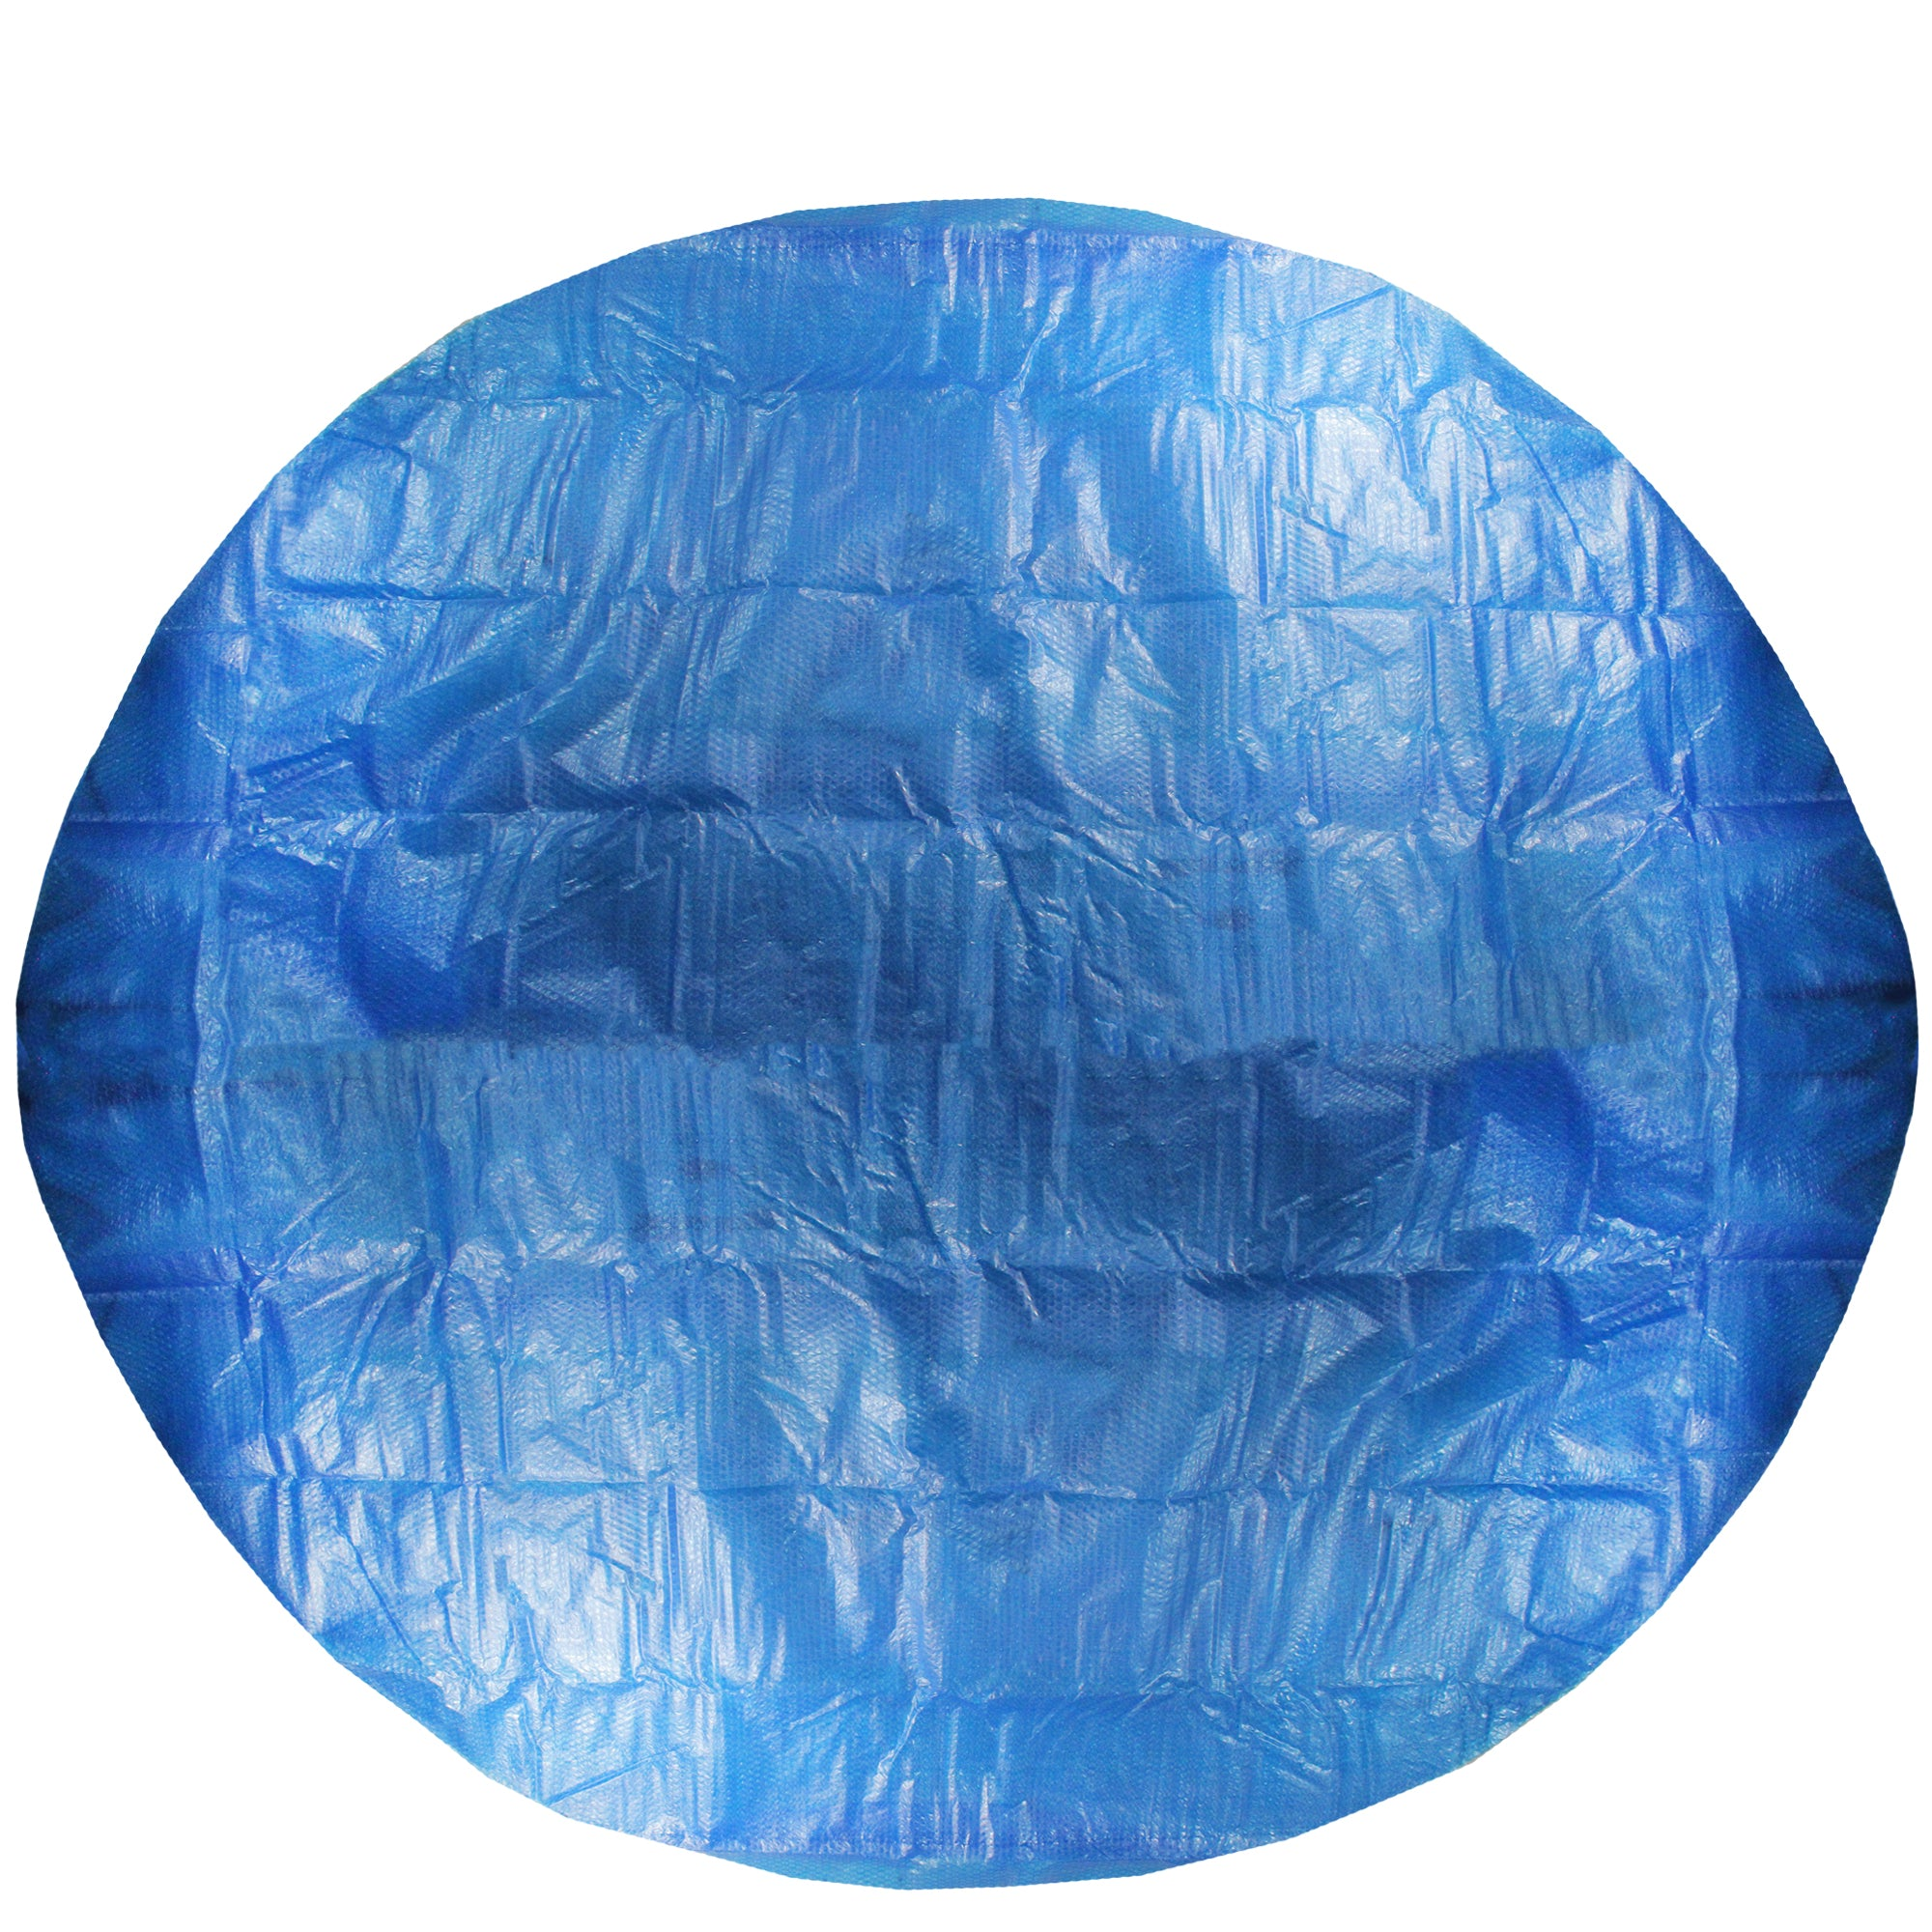 8.9\' Blue Round Floating Solar Cover for Swimming Pool